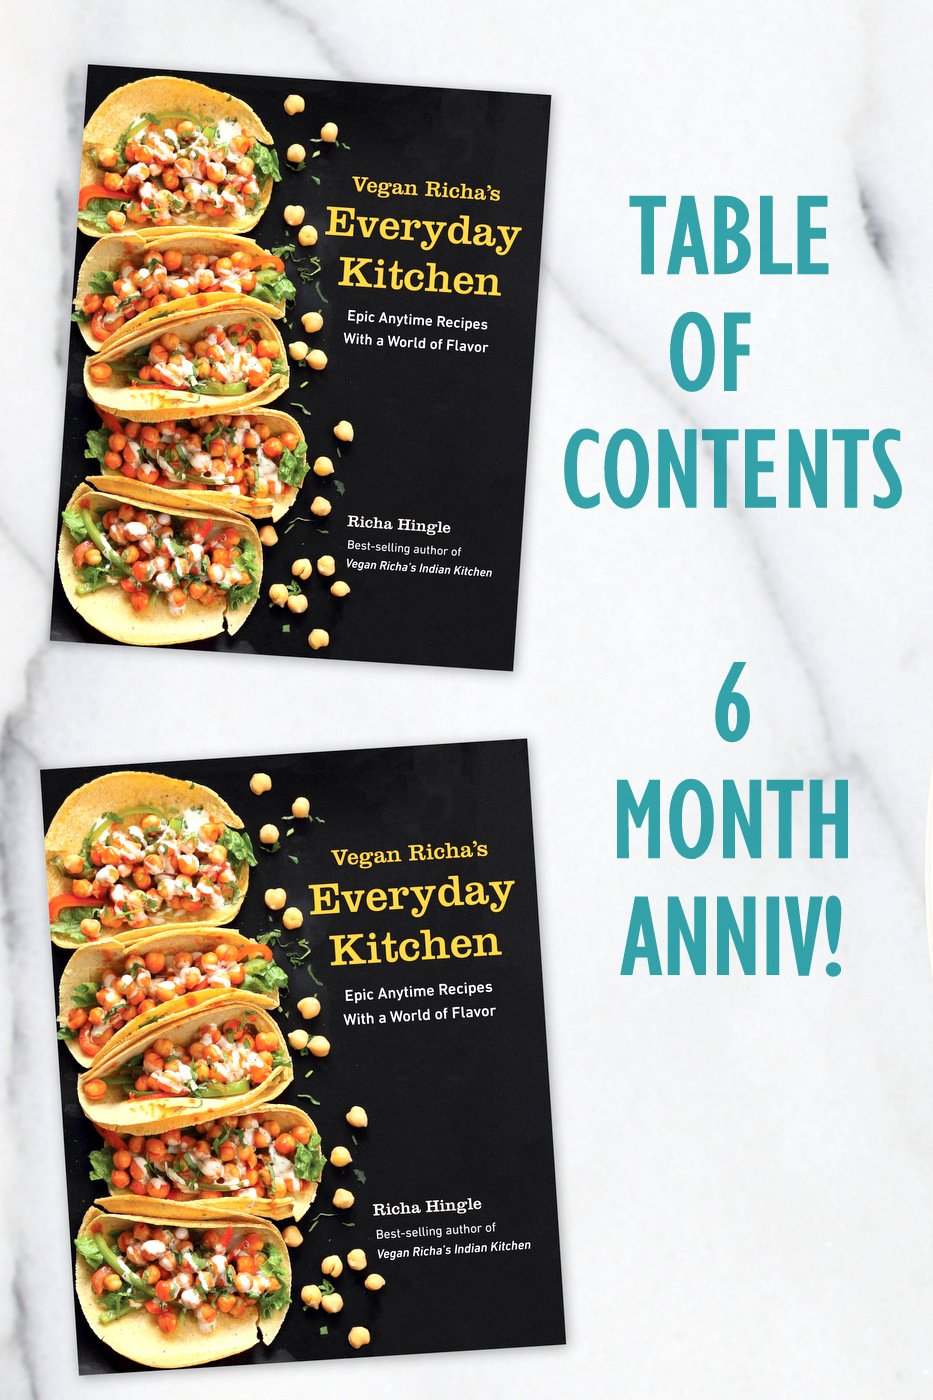 Vegan Richa's Everyday Kitchen Cookbook